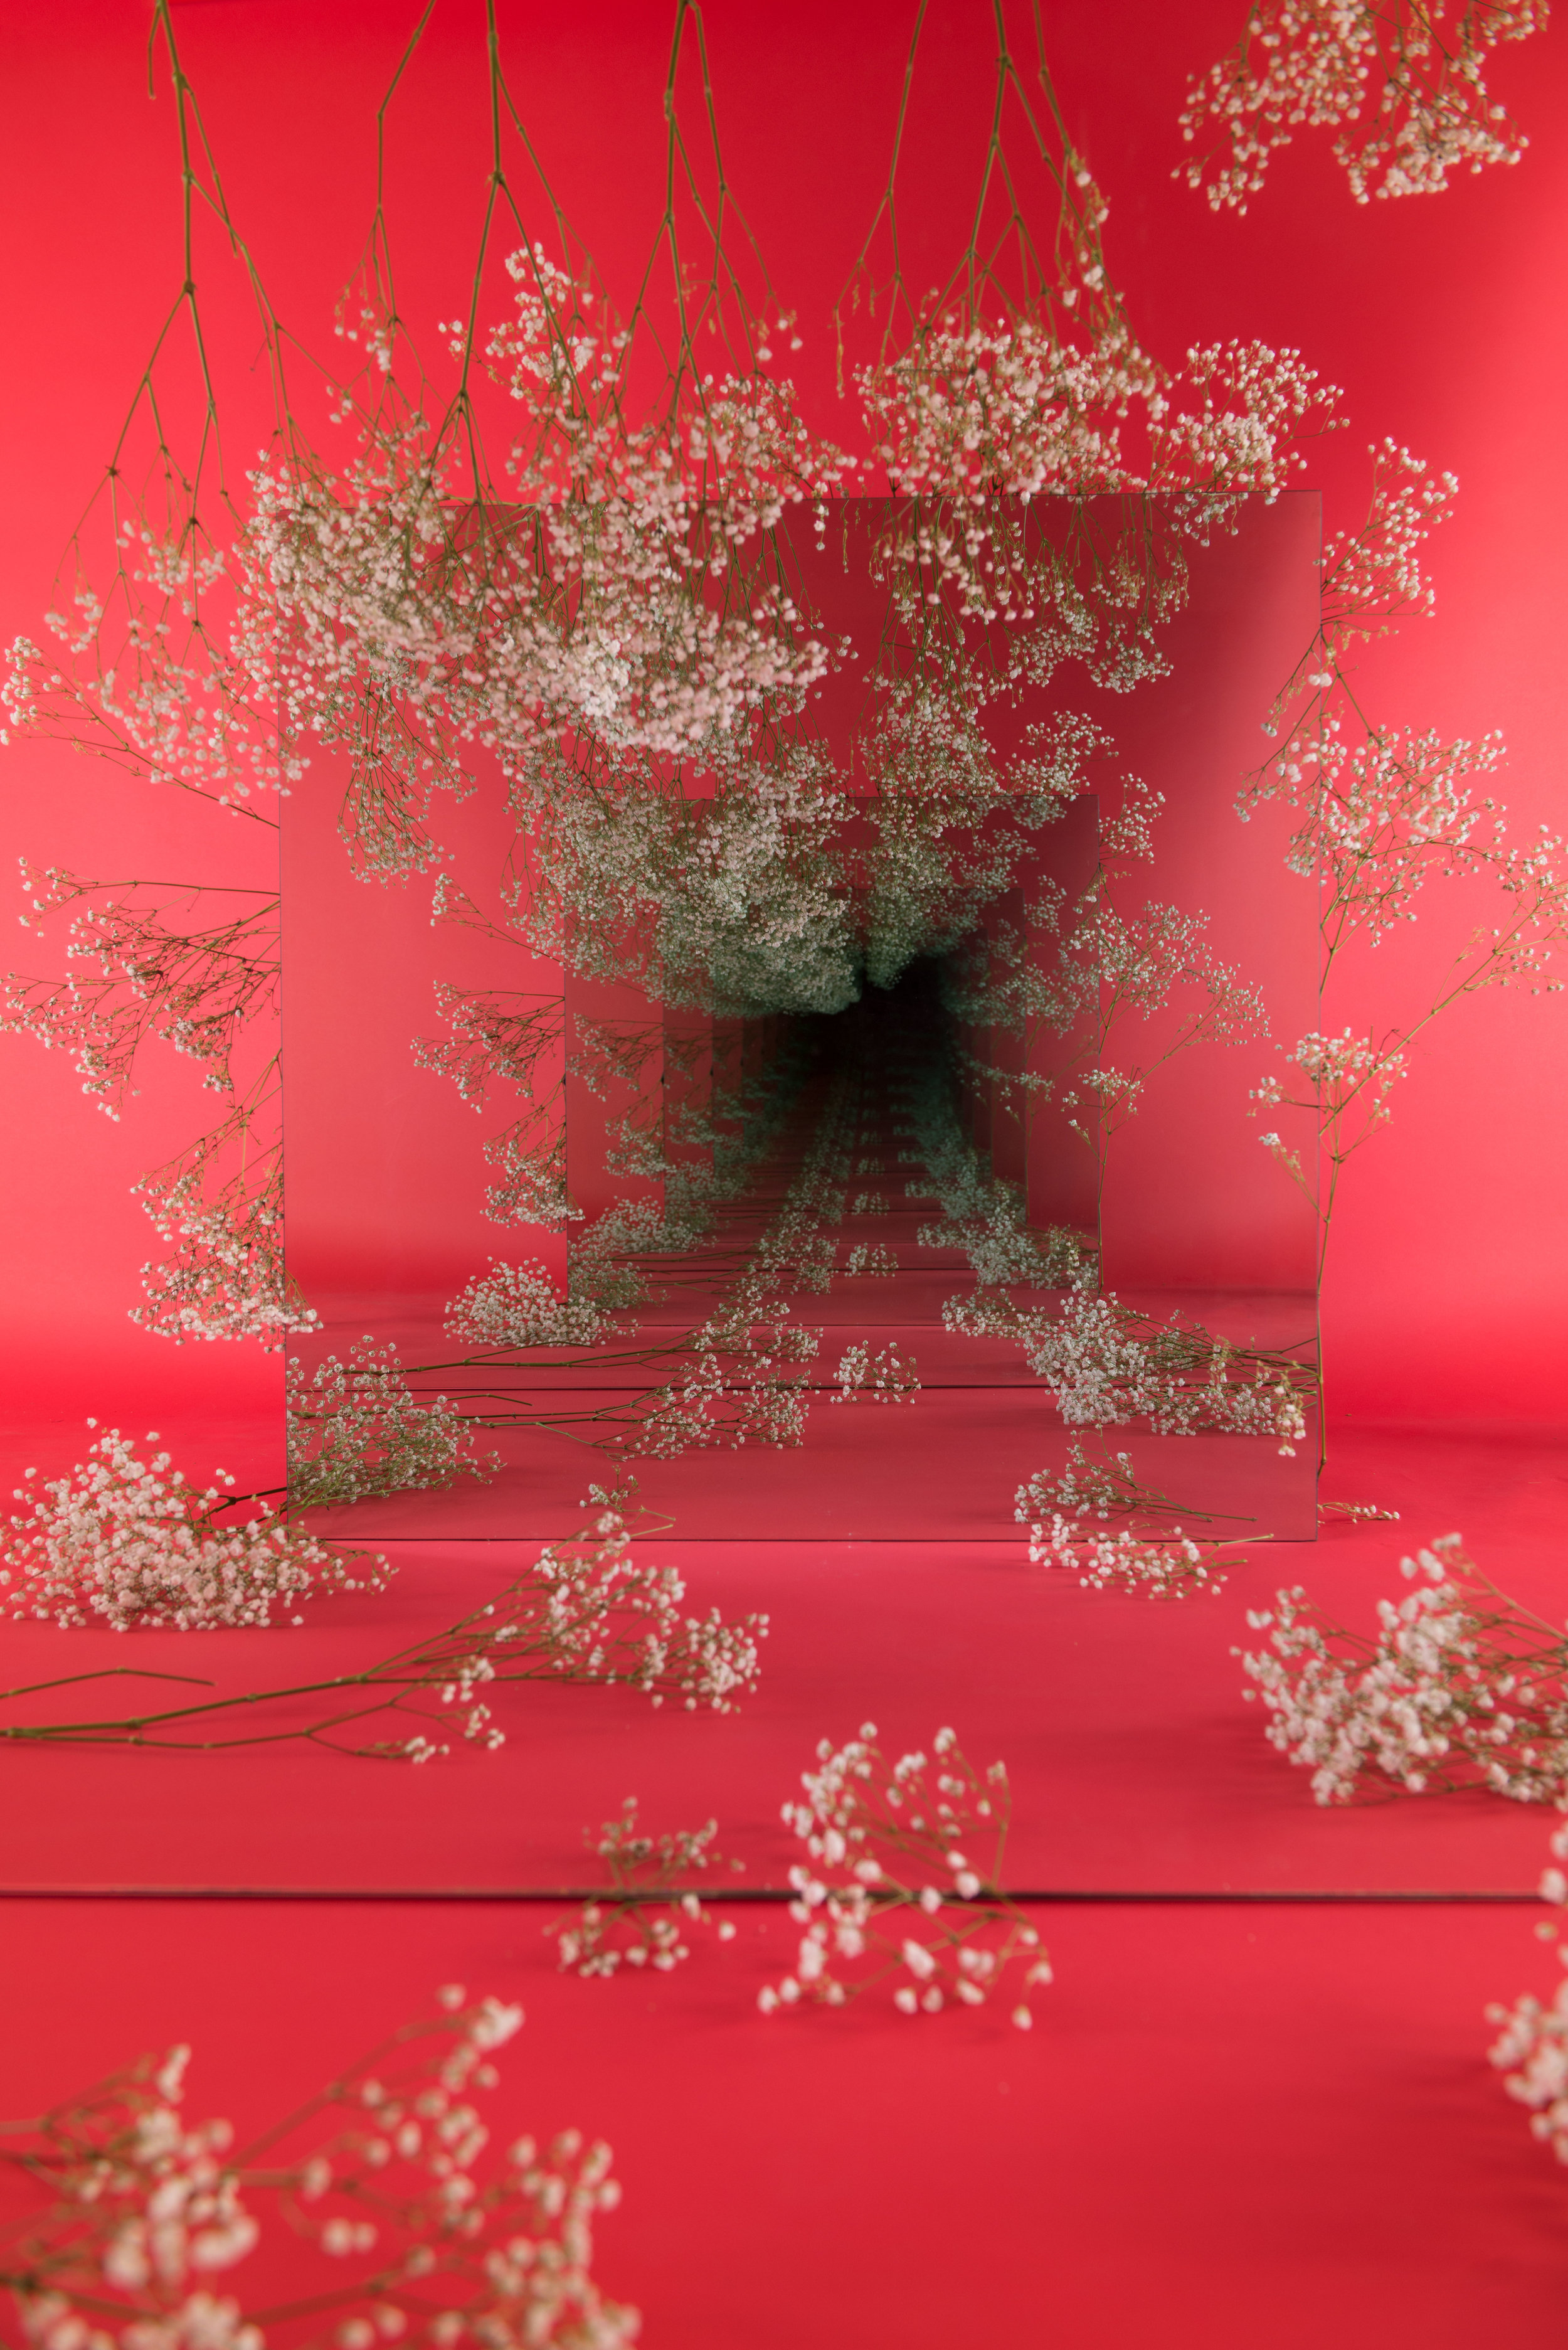 """SARAH MEYOHAS. """"BABY'S BREATH SPECULATION"""" (2018). CHROMOGENIC PRINT. 40 X 60 INCHES. COURTESY OF THE ARTIST."""